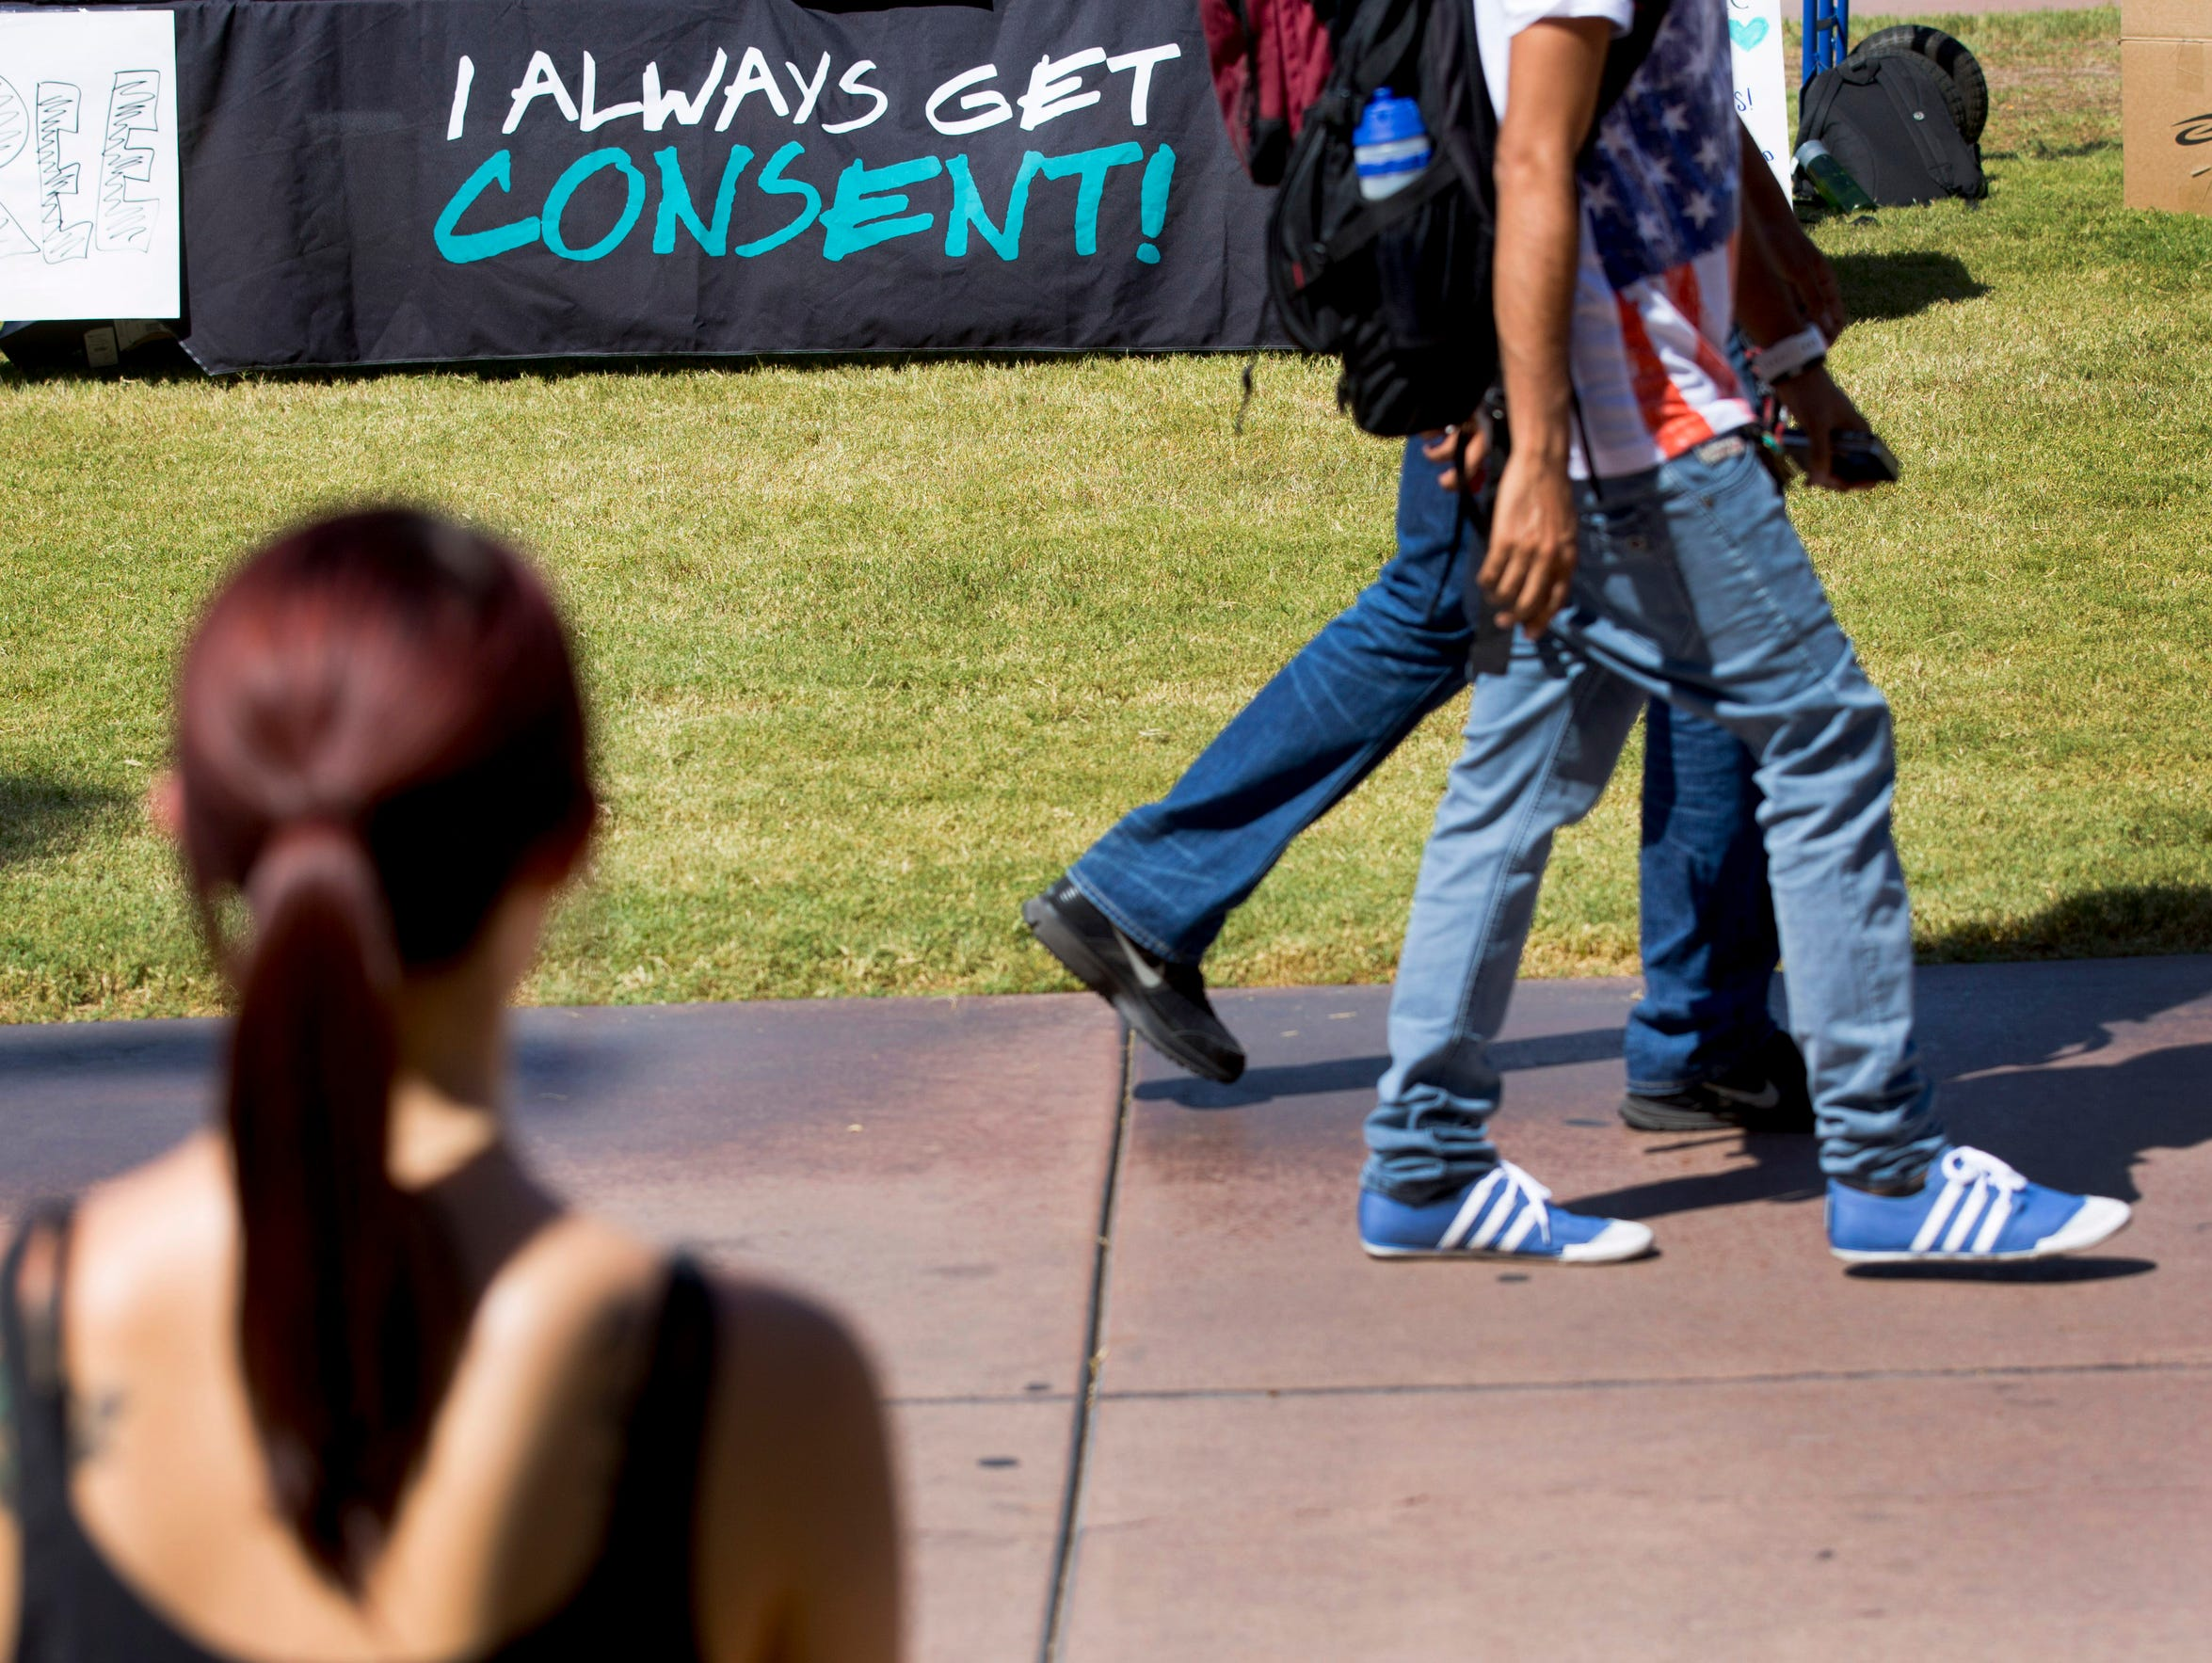 ASU has added more education programs designed to raise